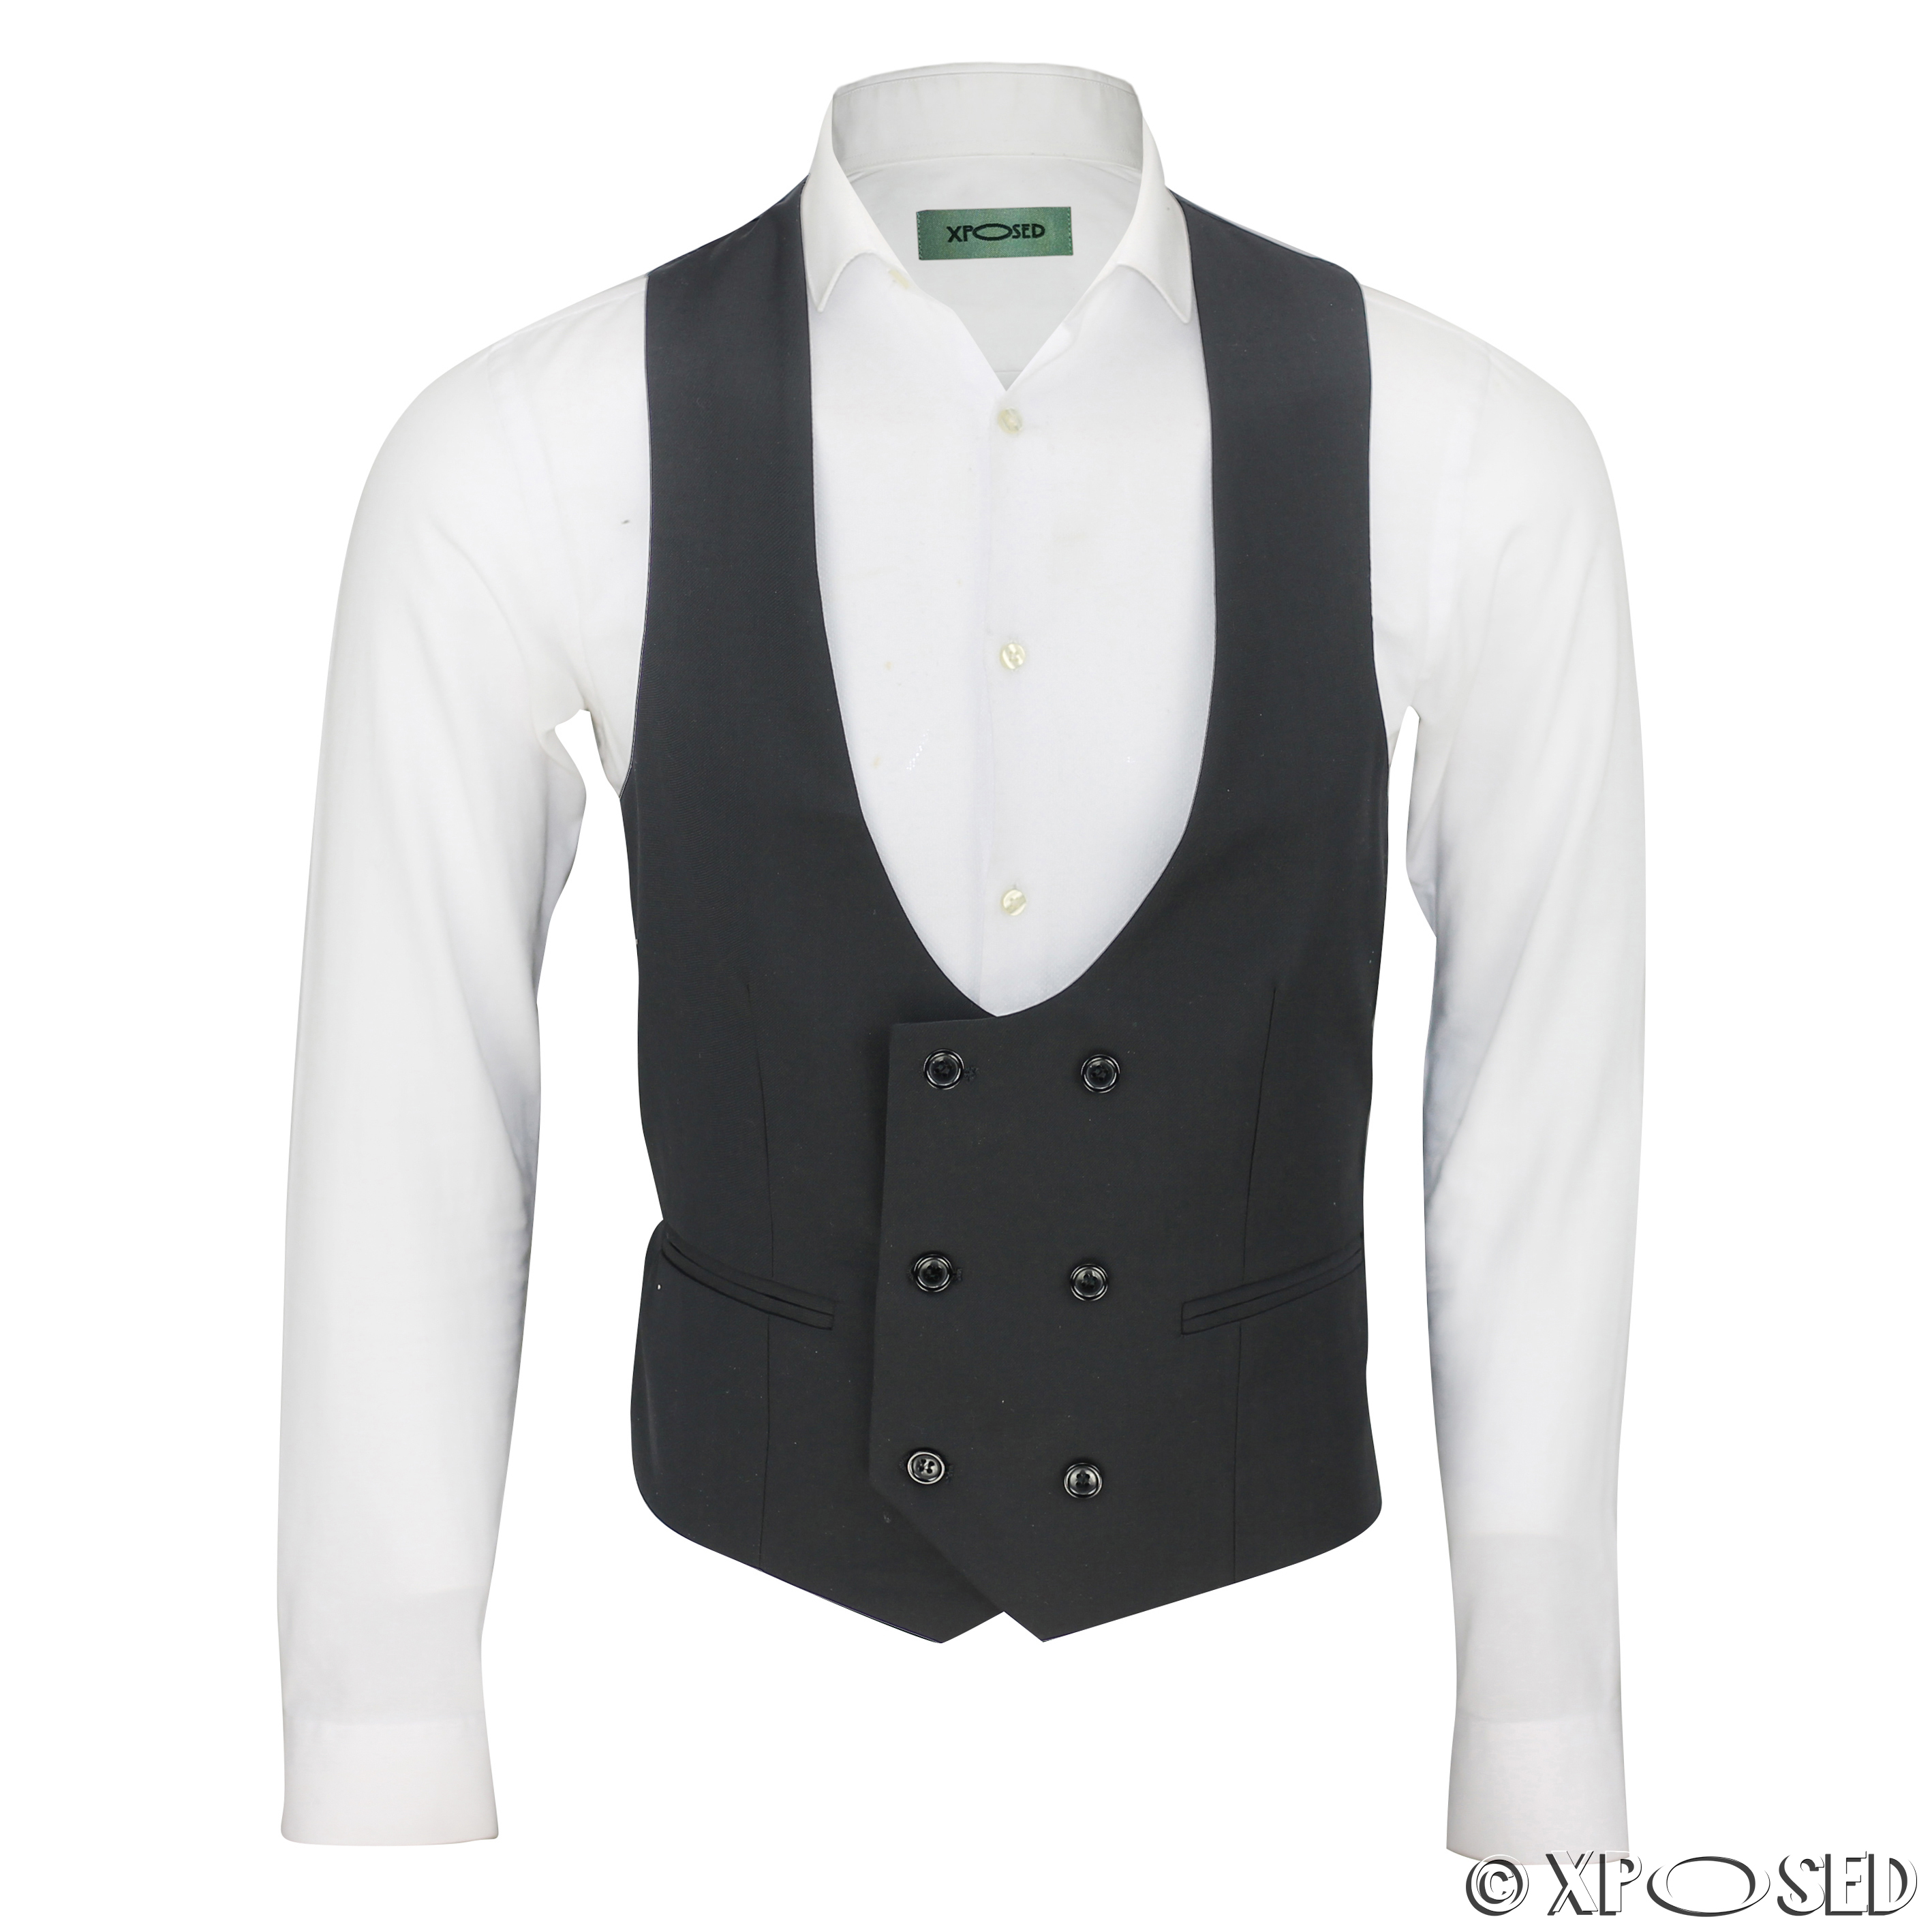 Certainly what this handsome white tuxedo vest lacks in vivacity, it makes up for in the starkness of its tailoring. Beginning with its fashionably low cut front, it builds an aesthetic of intrigue accented by three satin covered buttons and two satin besom pockets, creating a look that's sharp in its sophistication.